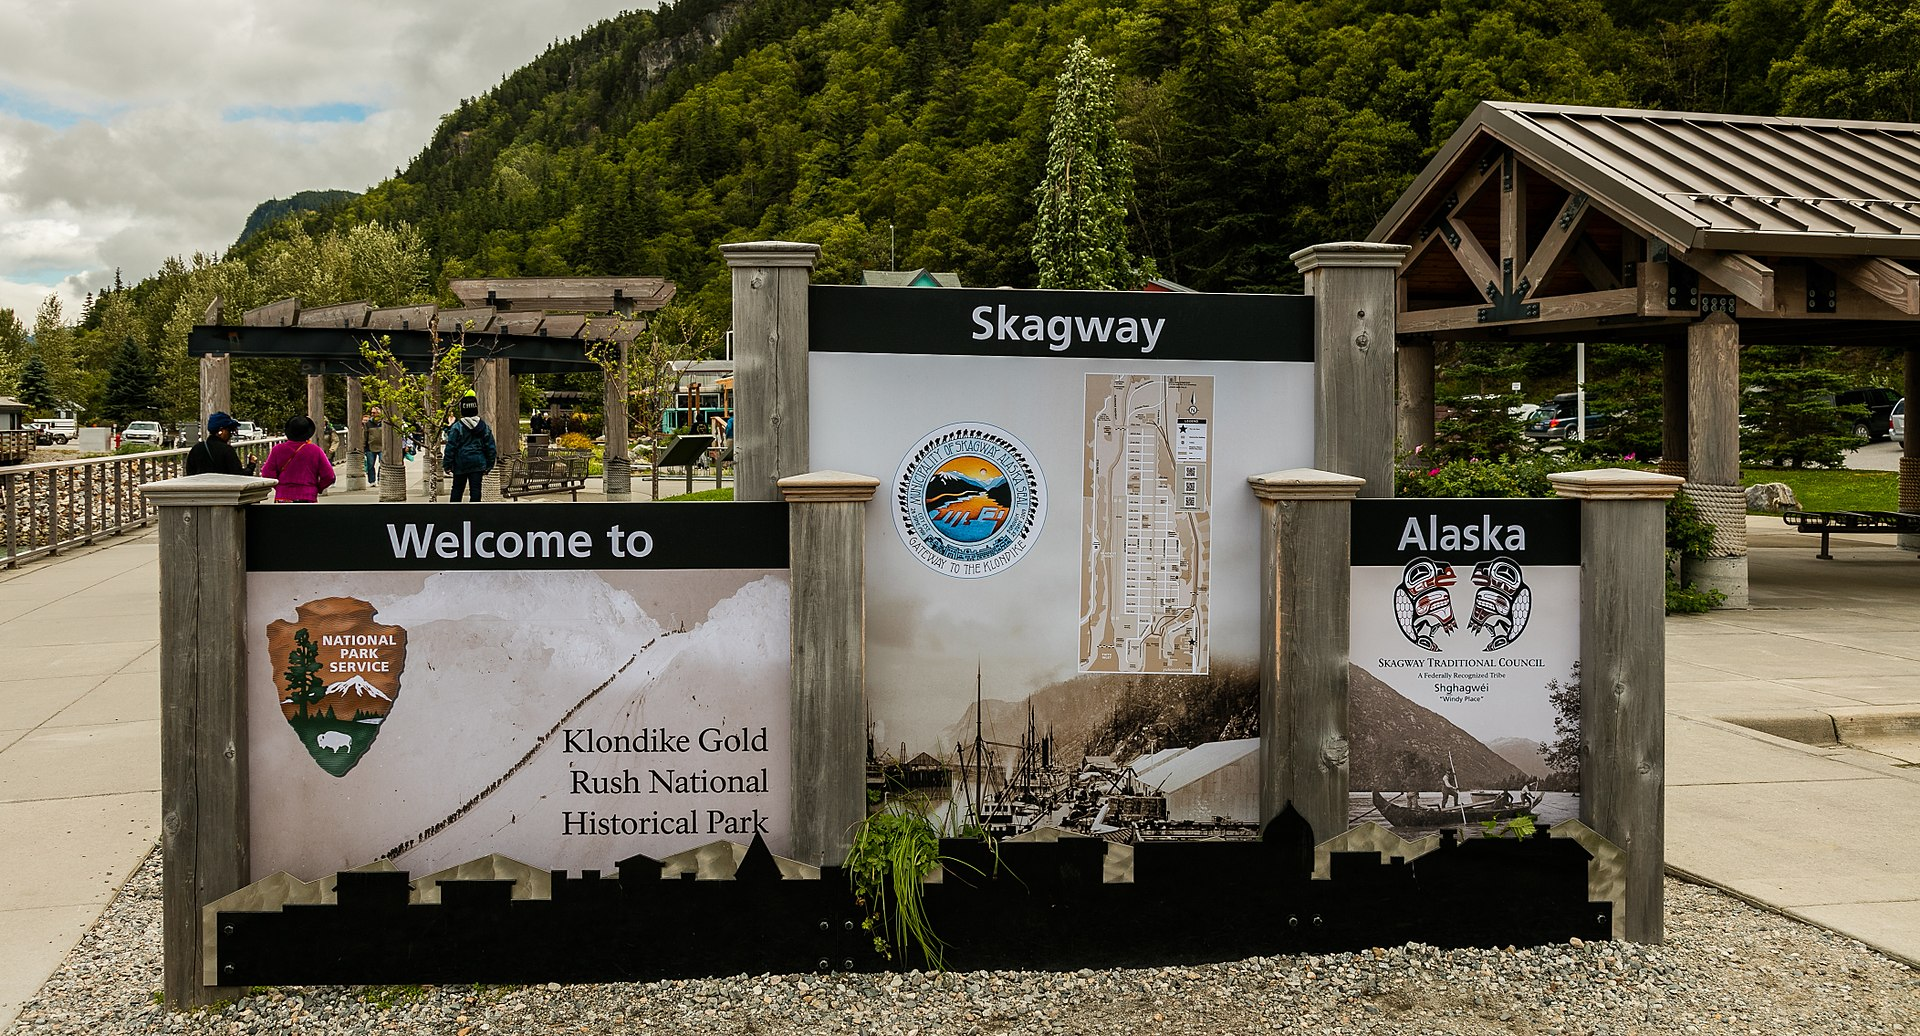 Alaska, top historical places to visit by state, Klondike Gold Rush,